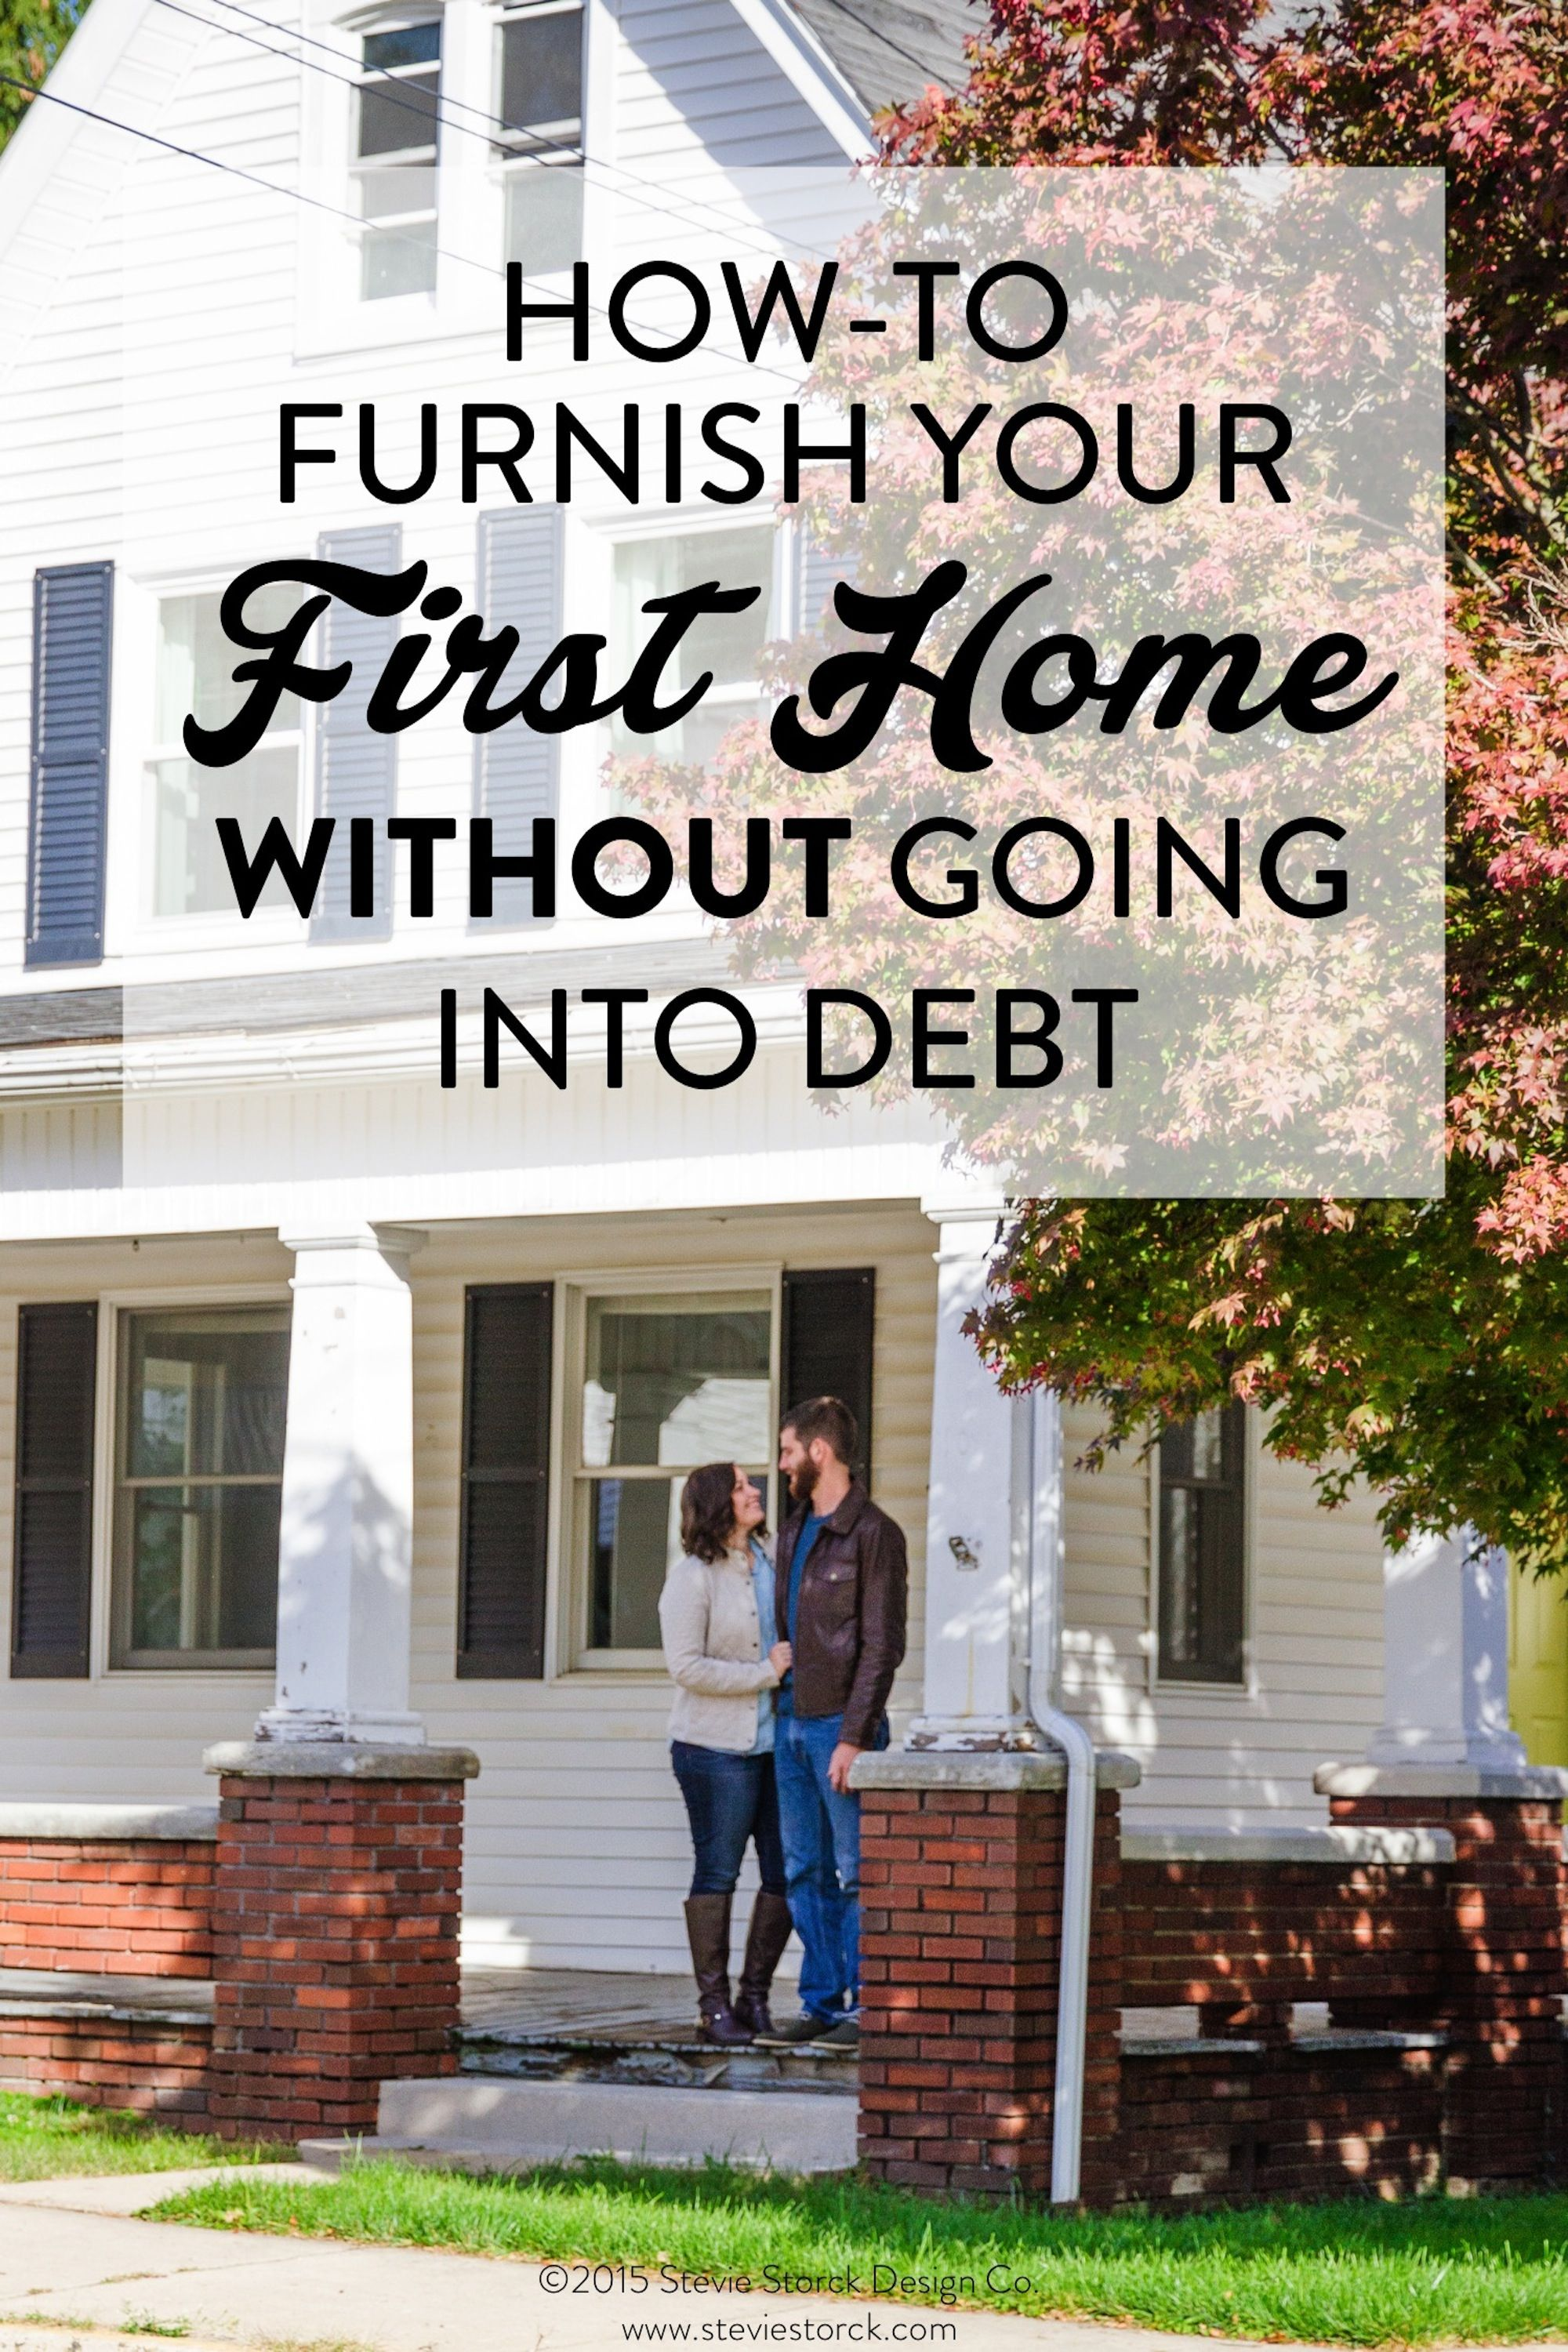 How to furnish your first home without going into debt dream house